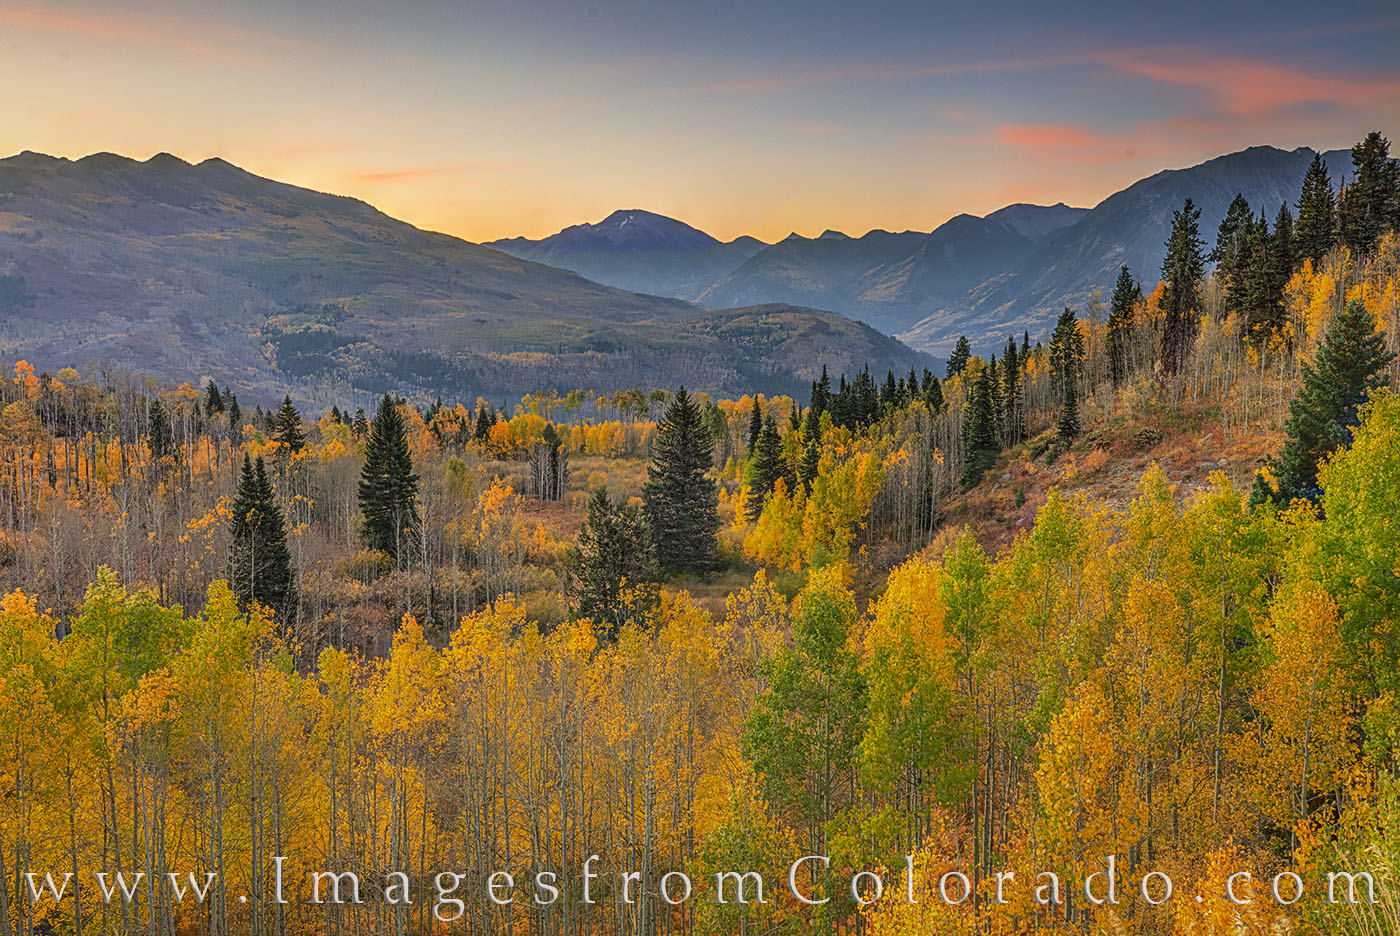 McClure Pass shows off its fall colors of gold, orange, and green under a beautiful morning sky. This photograph was taken on...